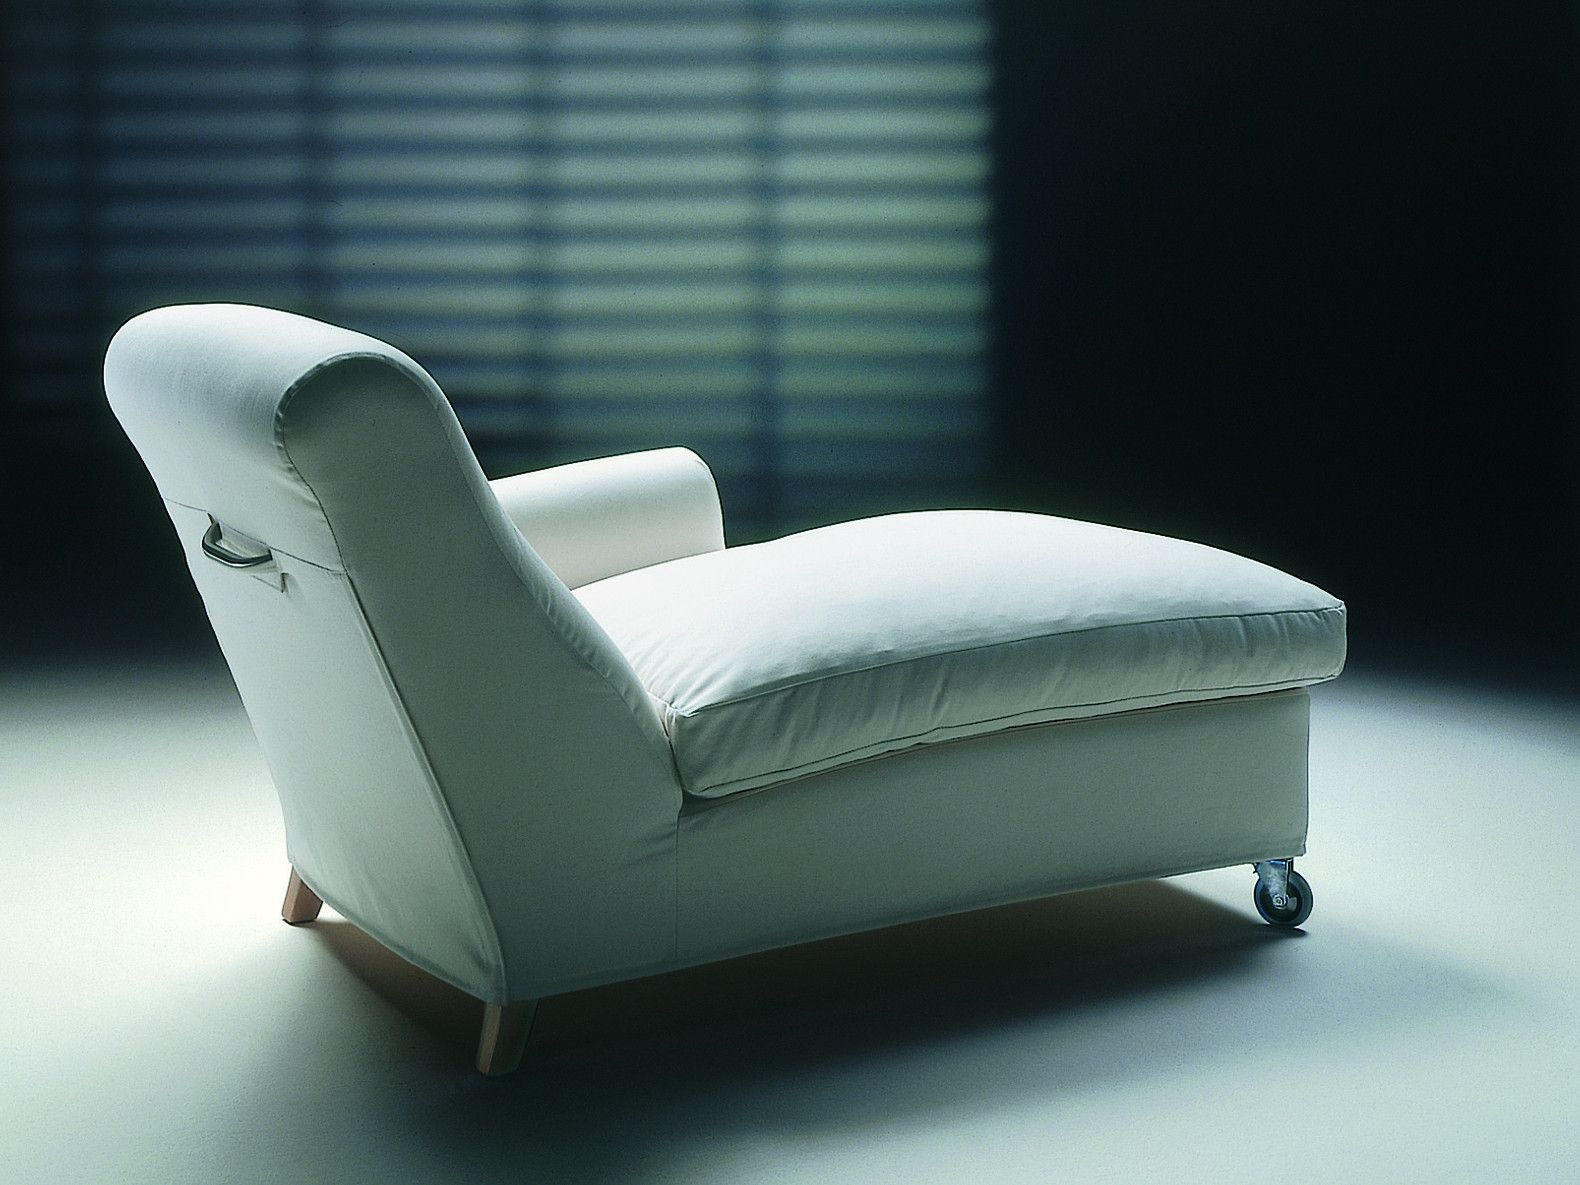 Flexform Nonnamaria Fauteuil.Nonnamaria Chaise By Flexform Via Designresource Co Other